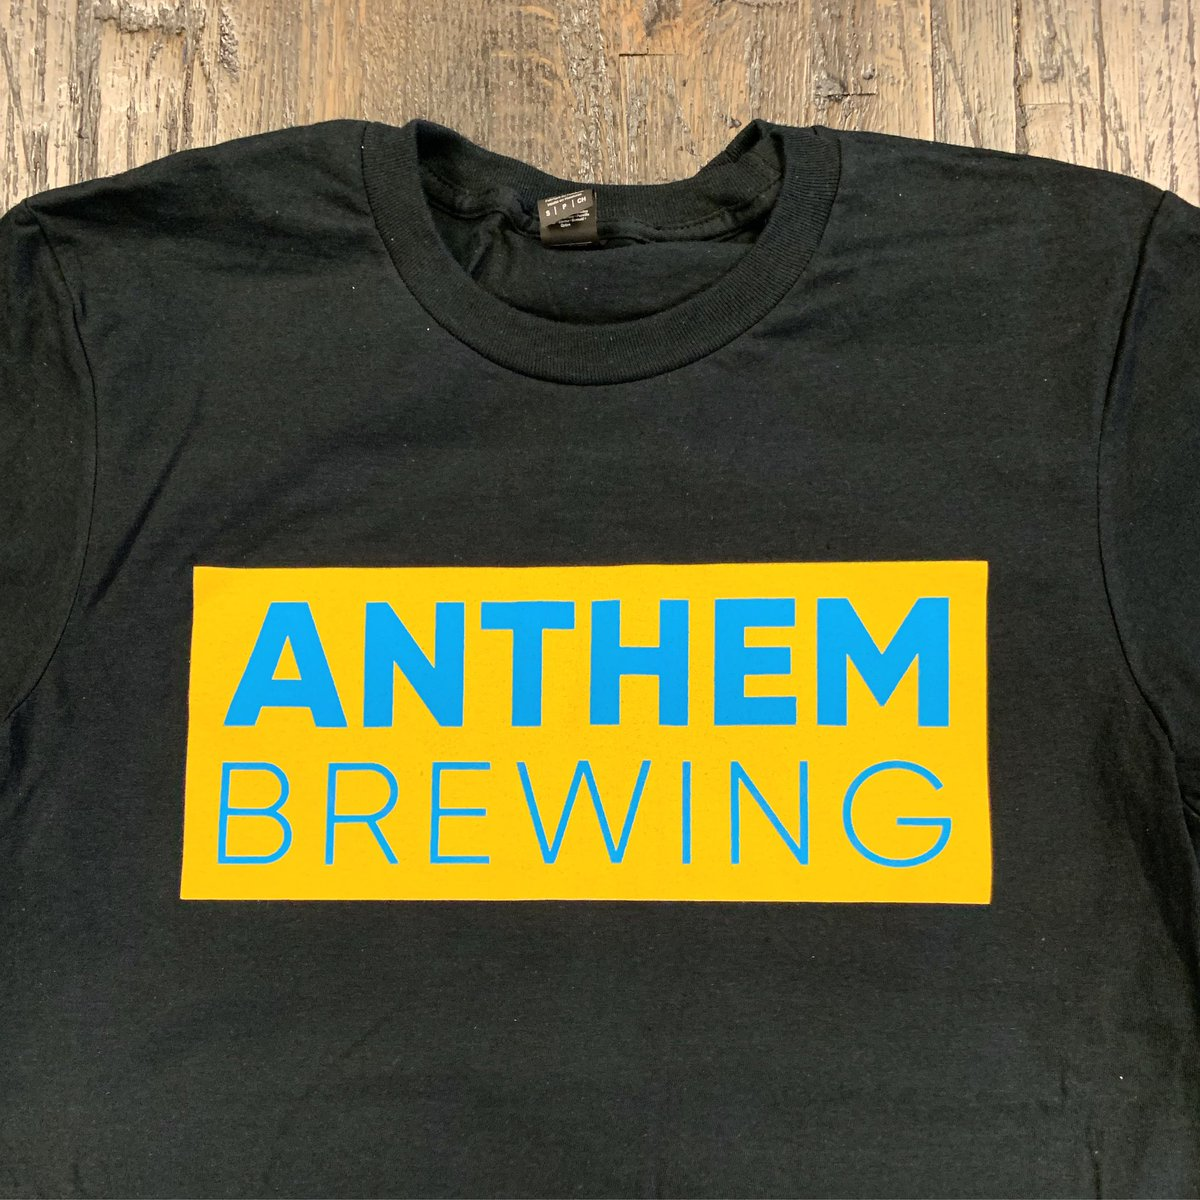 7e6868f23 Anthem Brewing Co. (@AnthemBrewing) | Twitter